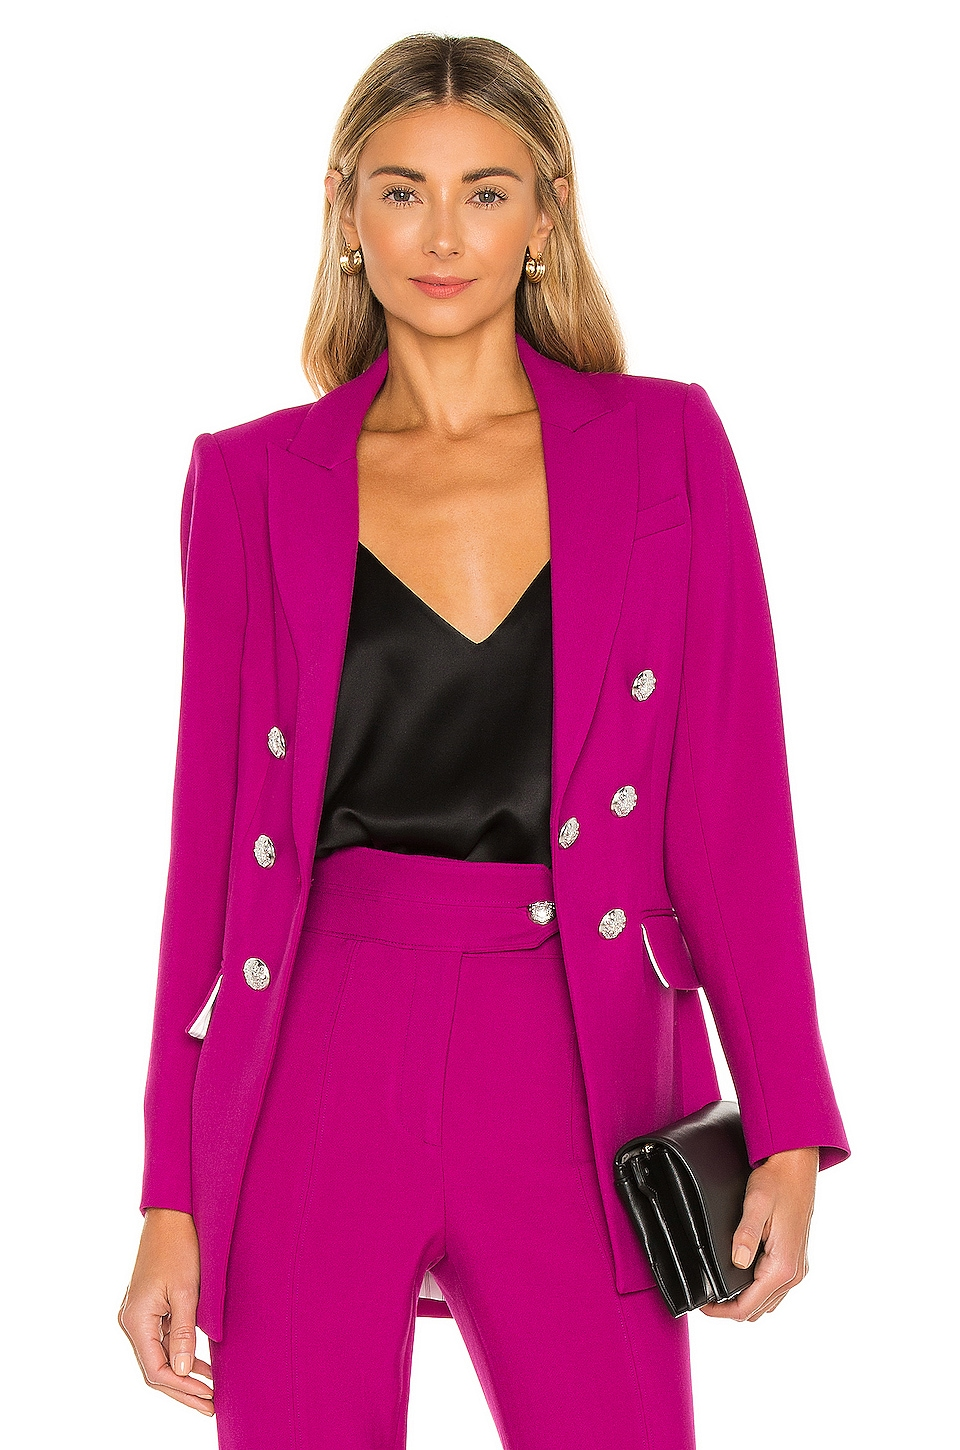 15 Best Trouser Suits For Female Wedding Guests That You'll Love